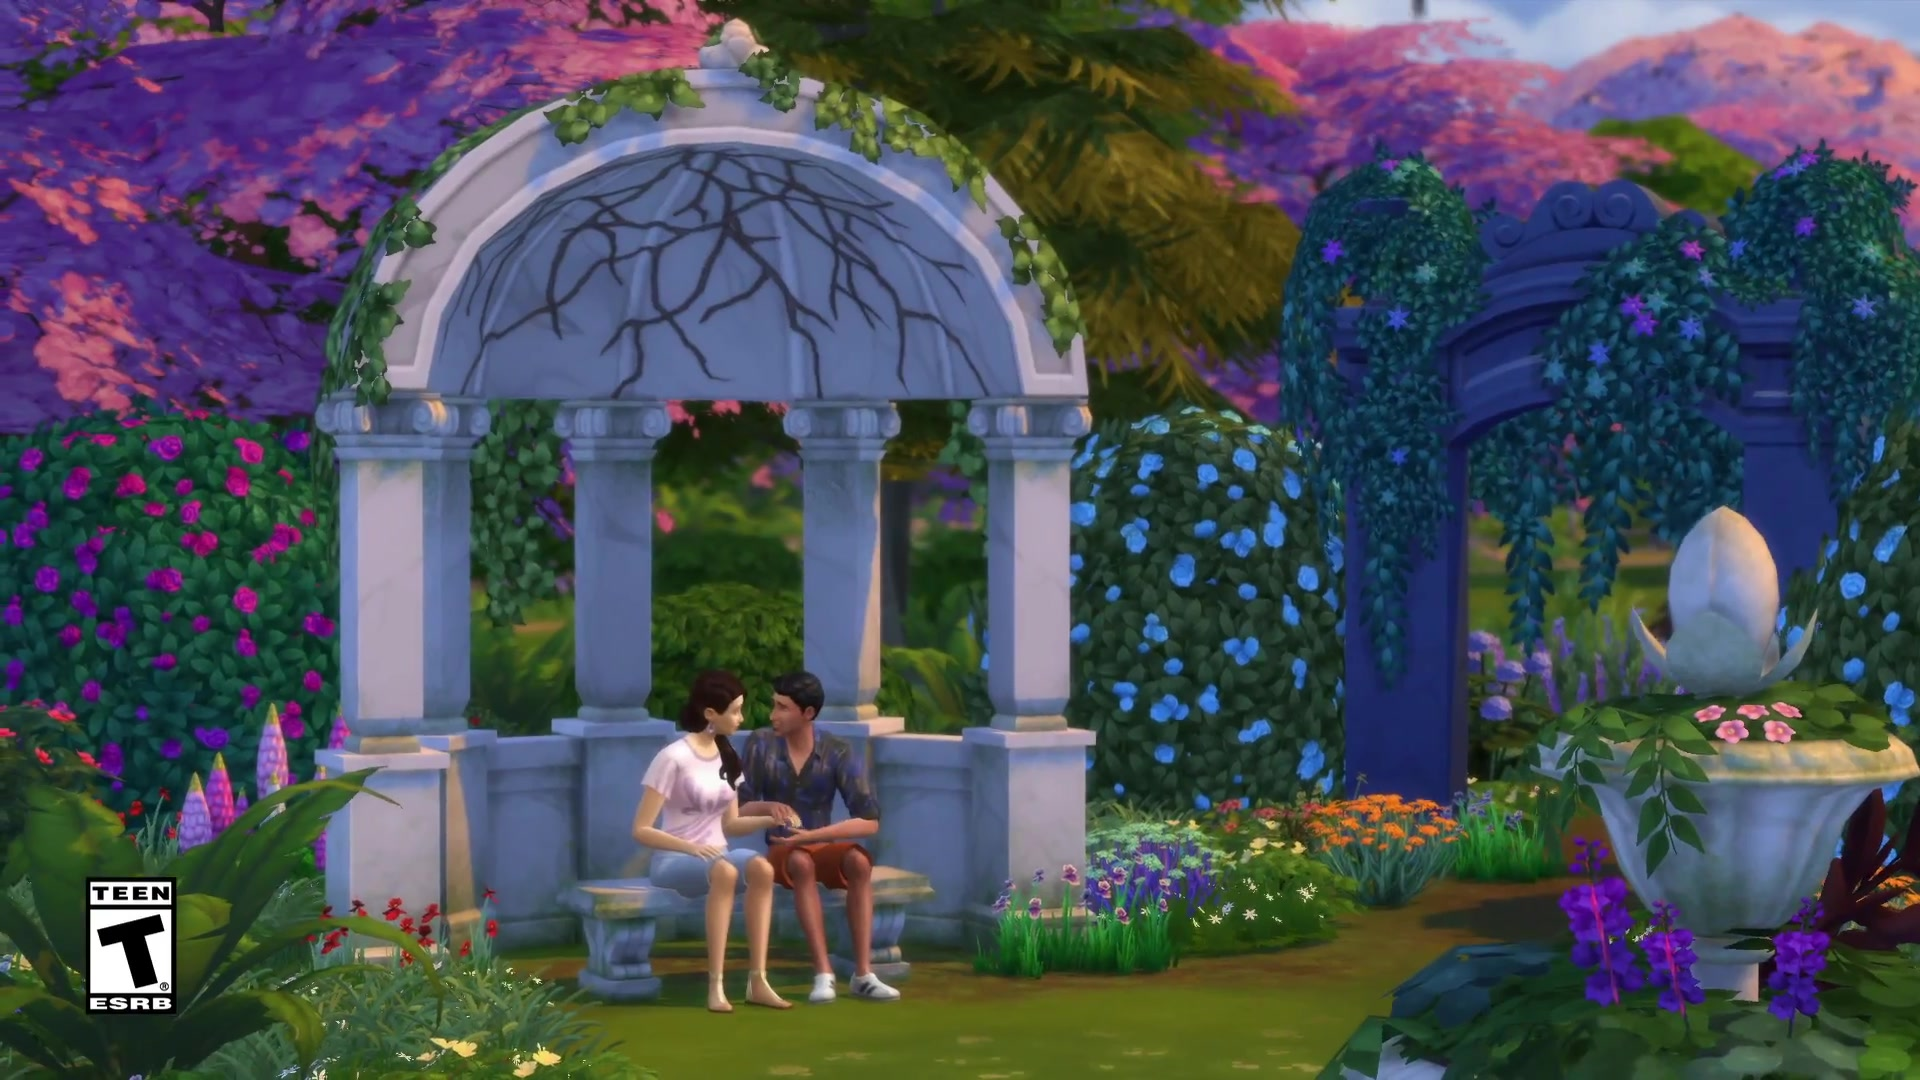 Sims 4 Images The Sims 4 Romantic Garden Stuff Hd Fond Décran And